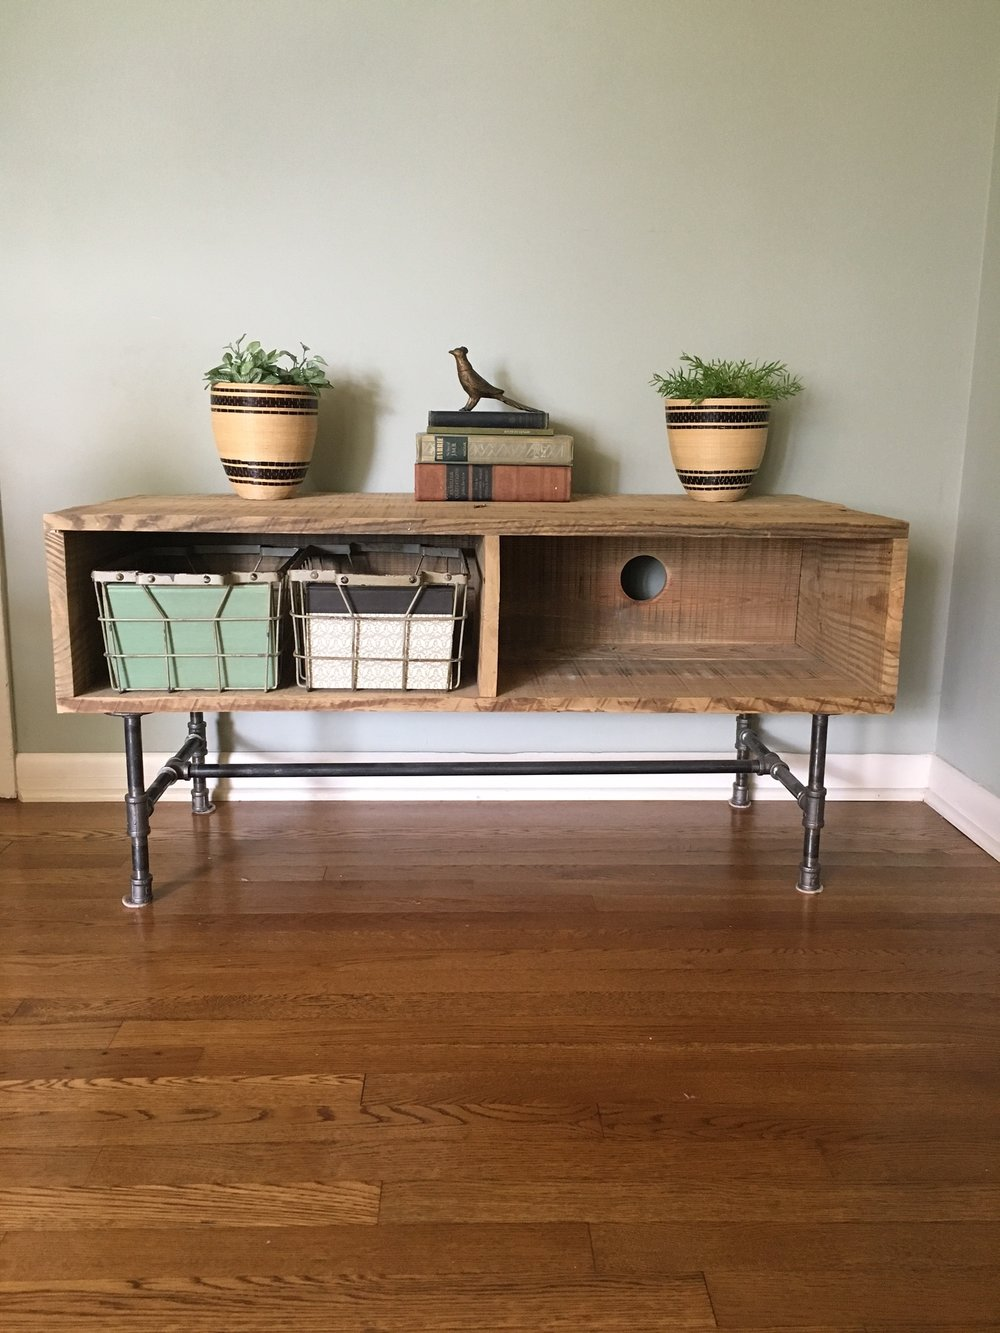 Reclaimed Wood Entertainment Center $250 View on Craigslist